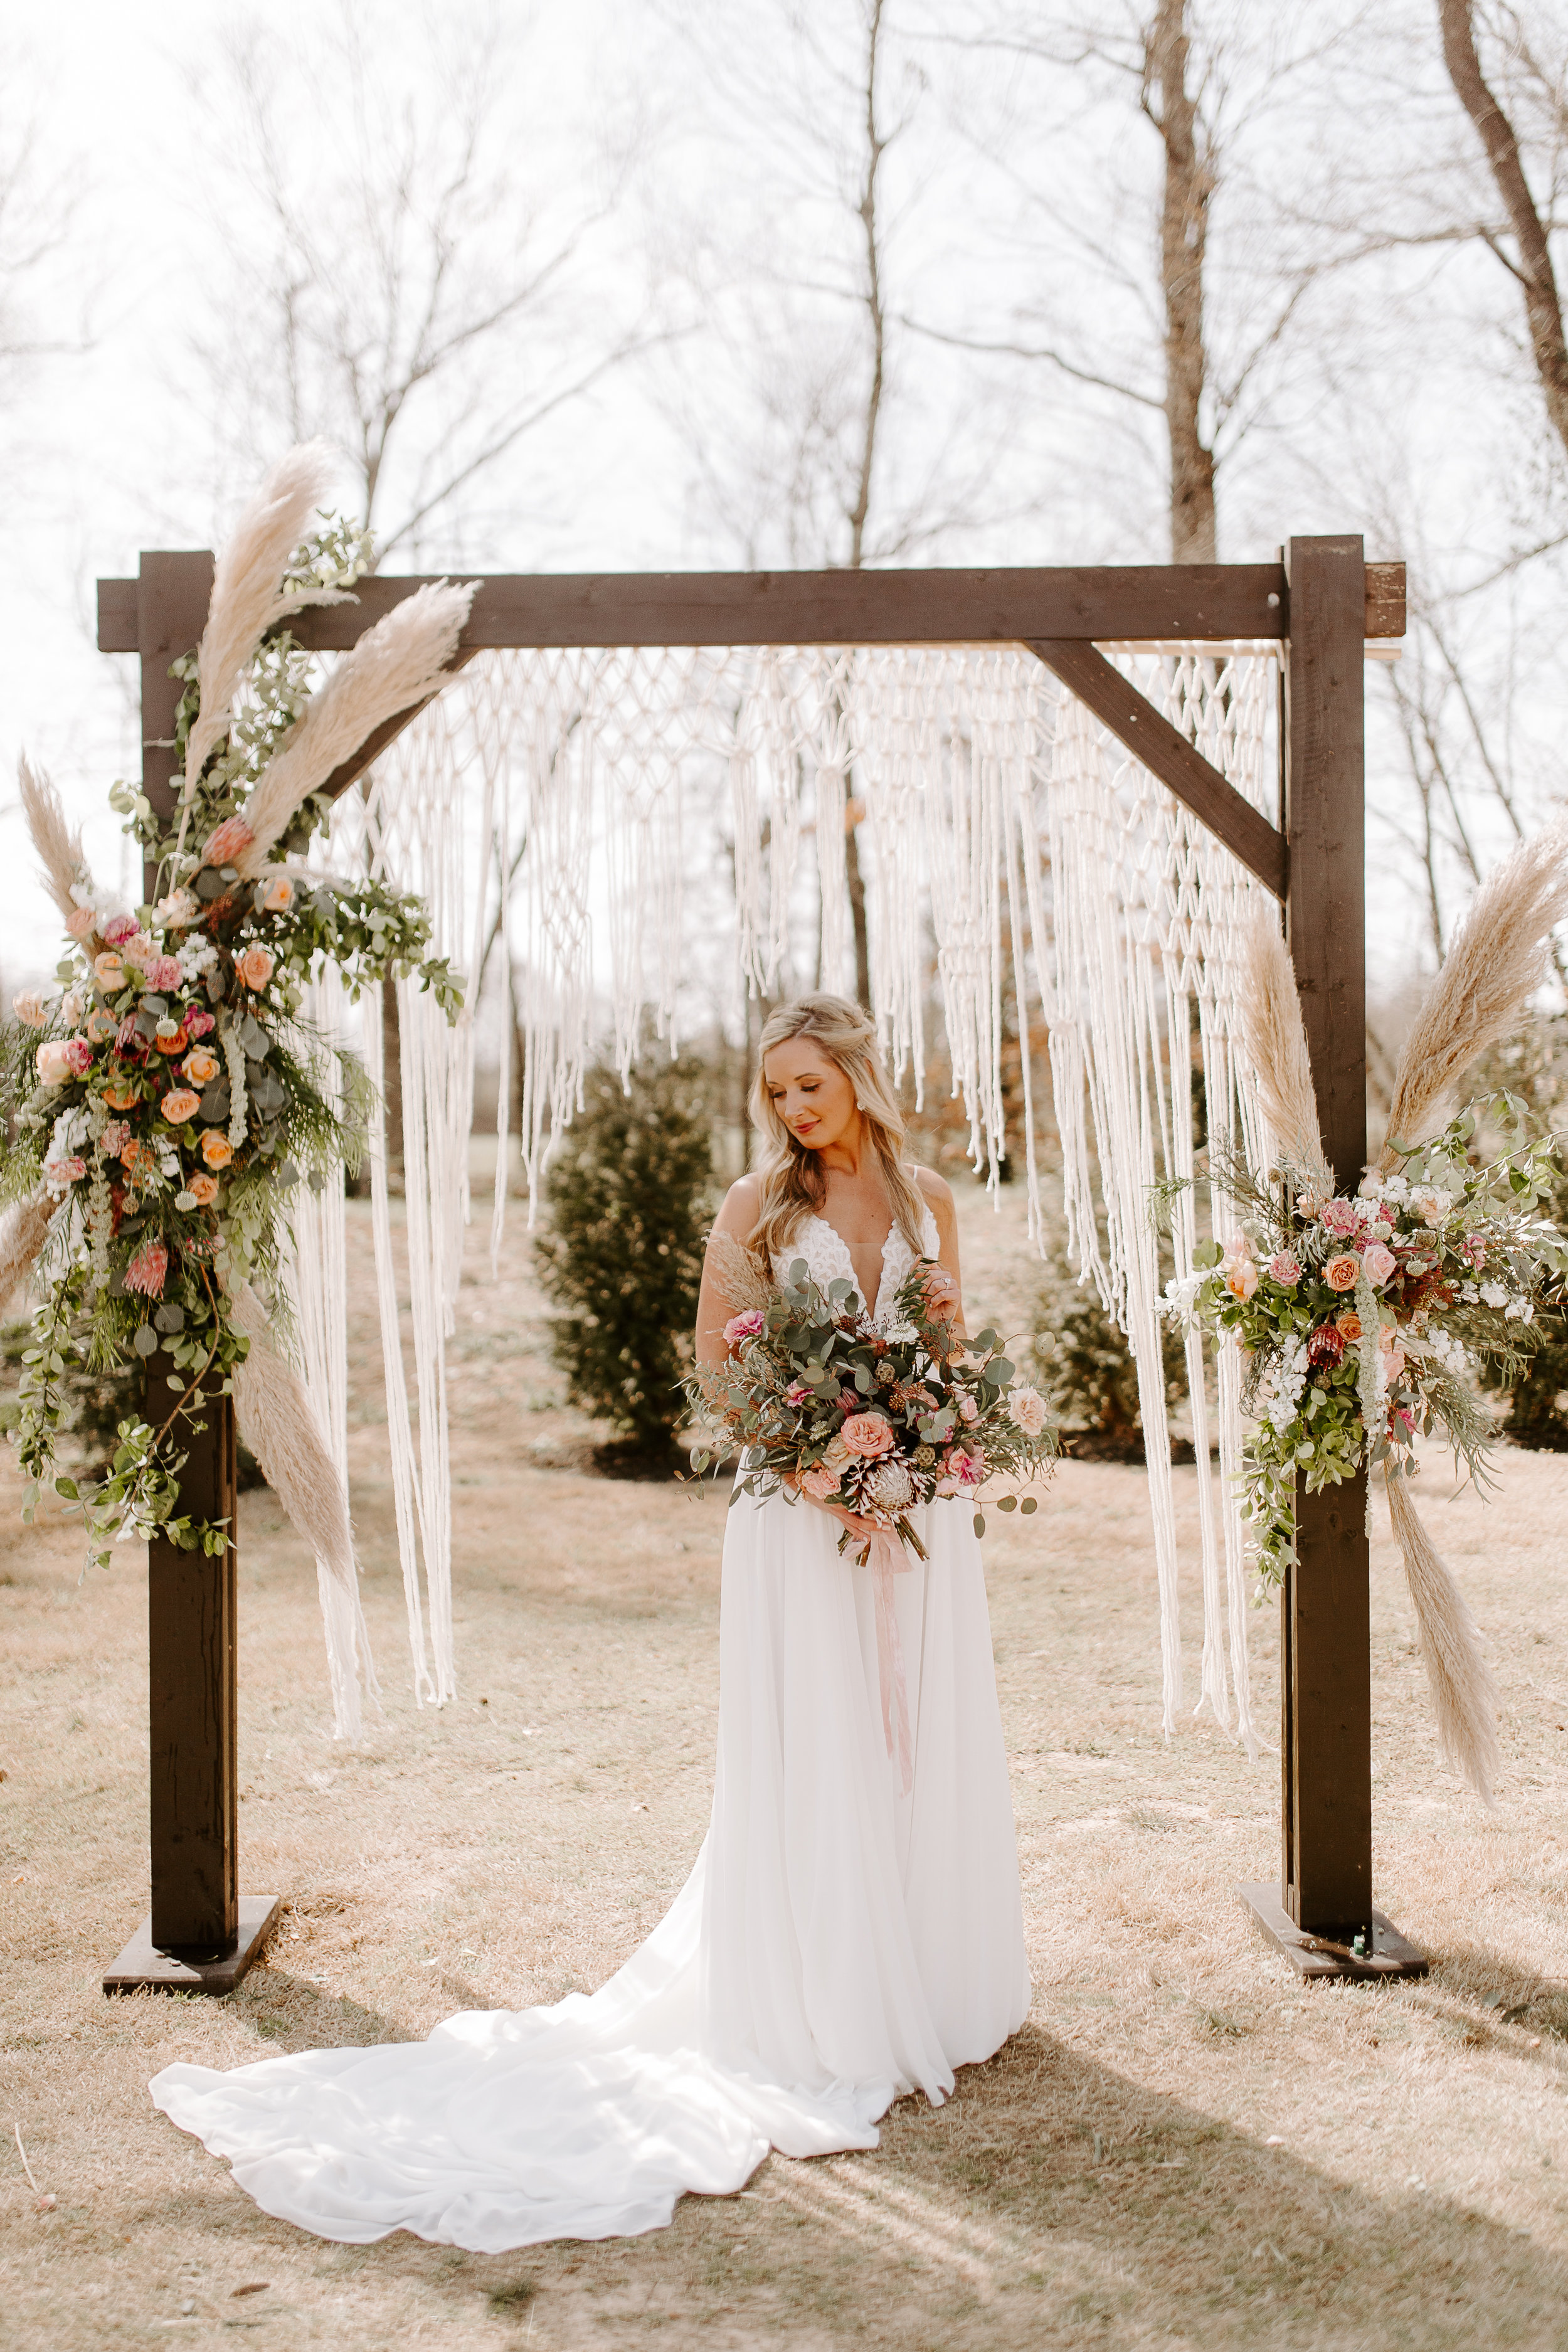 Photo by Kelsey Hawkins; Florals by Southern Sparkle Florals